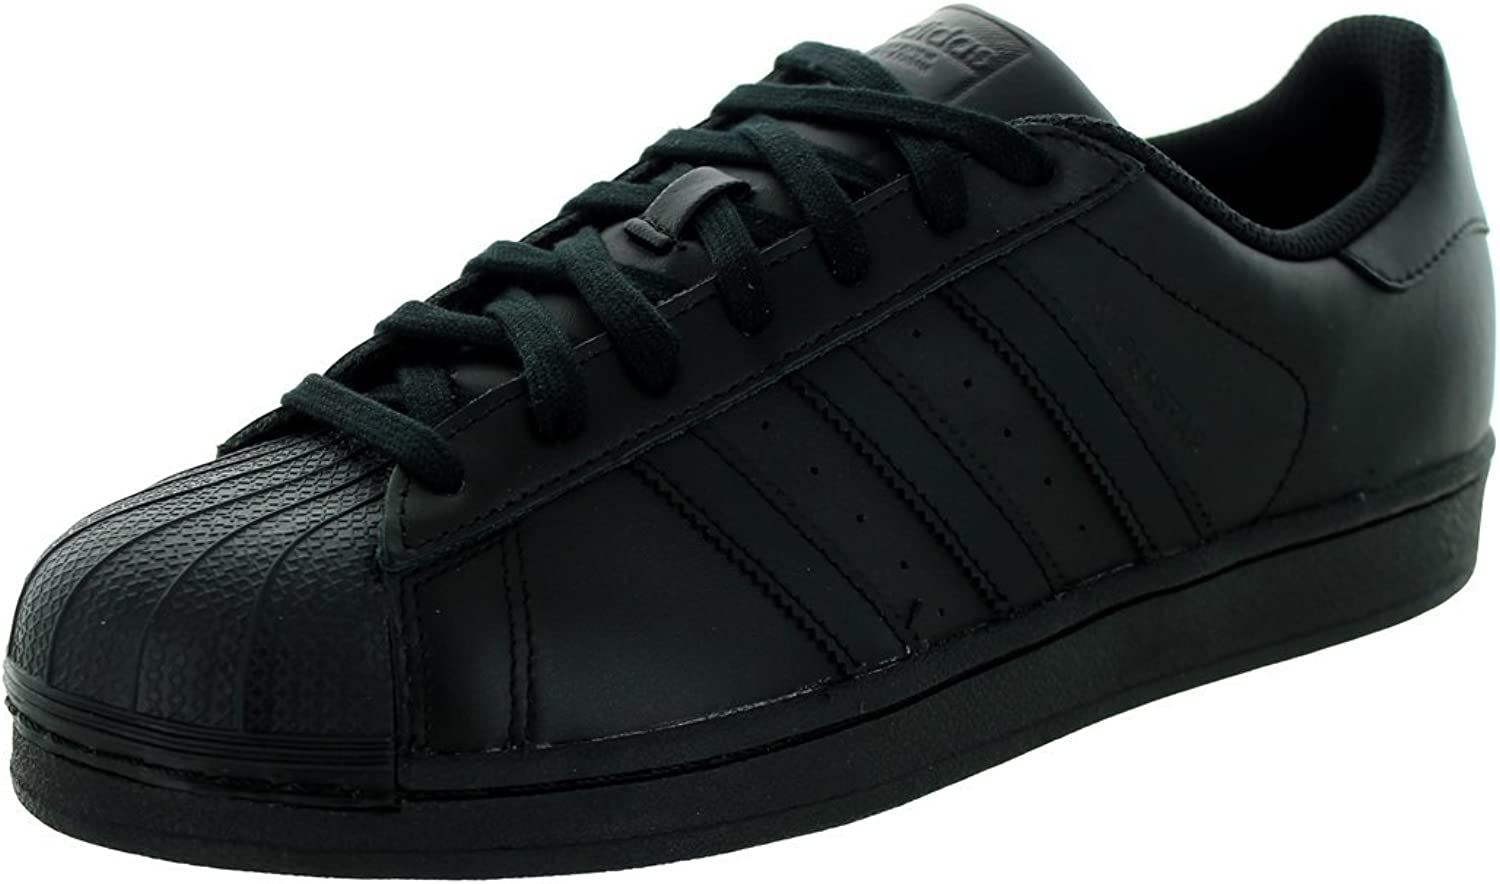 Adidas ORIGINALS Mens Superstar Fashion Sneakers